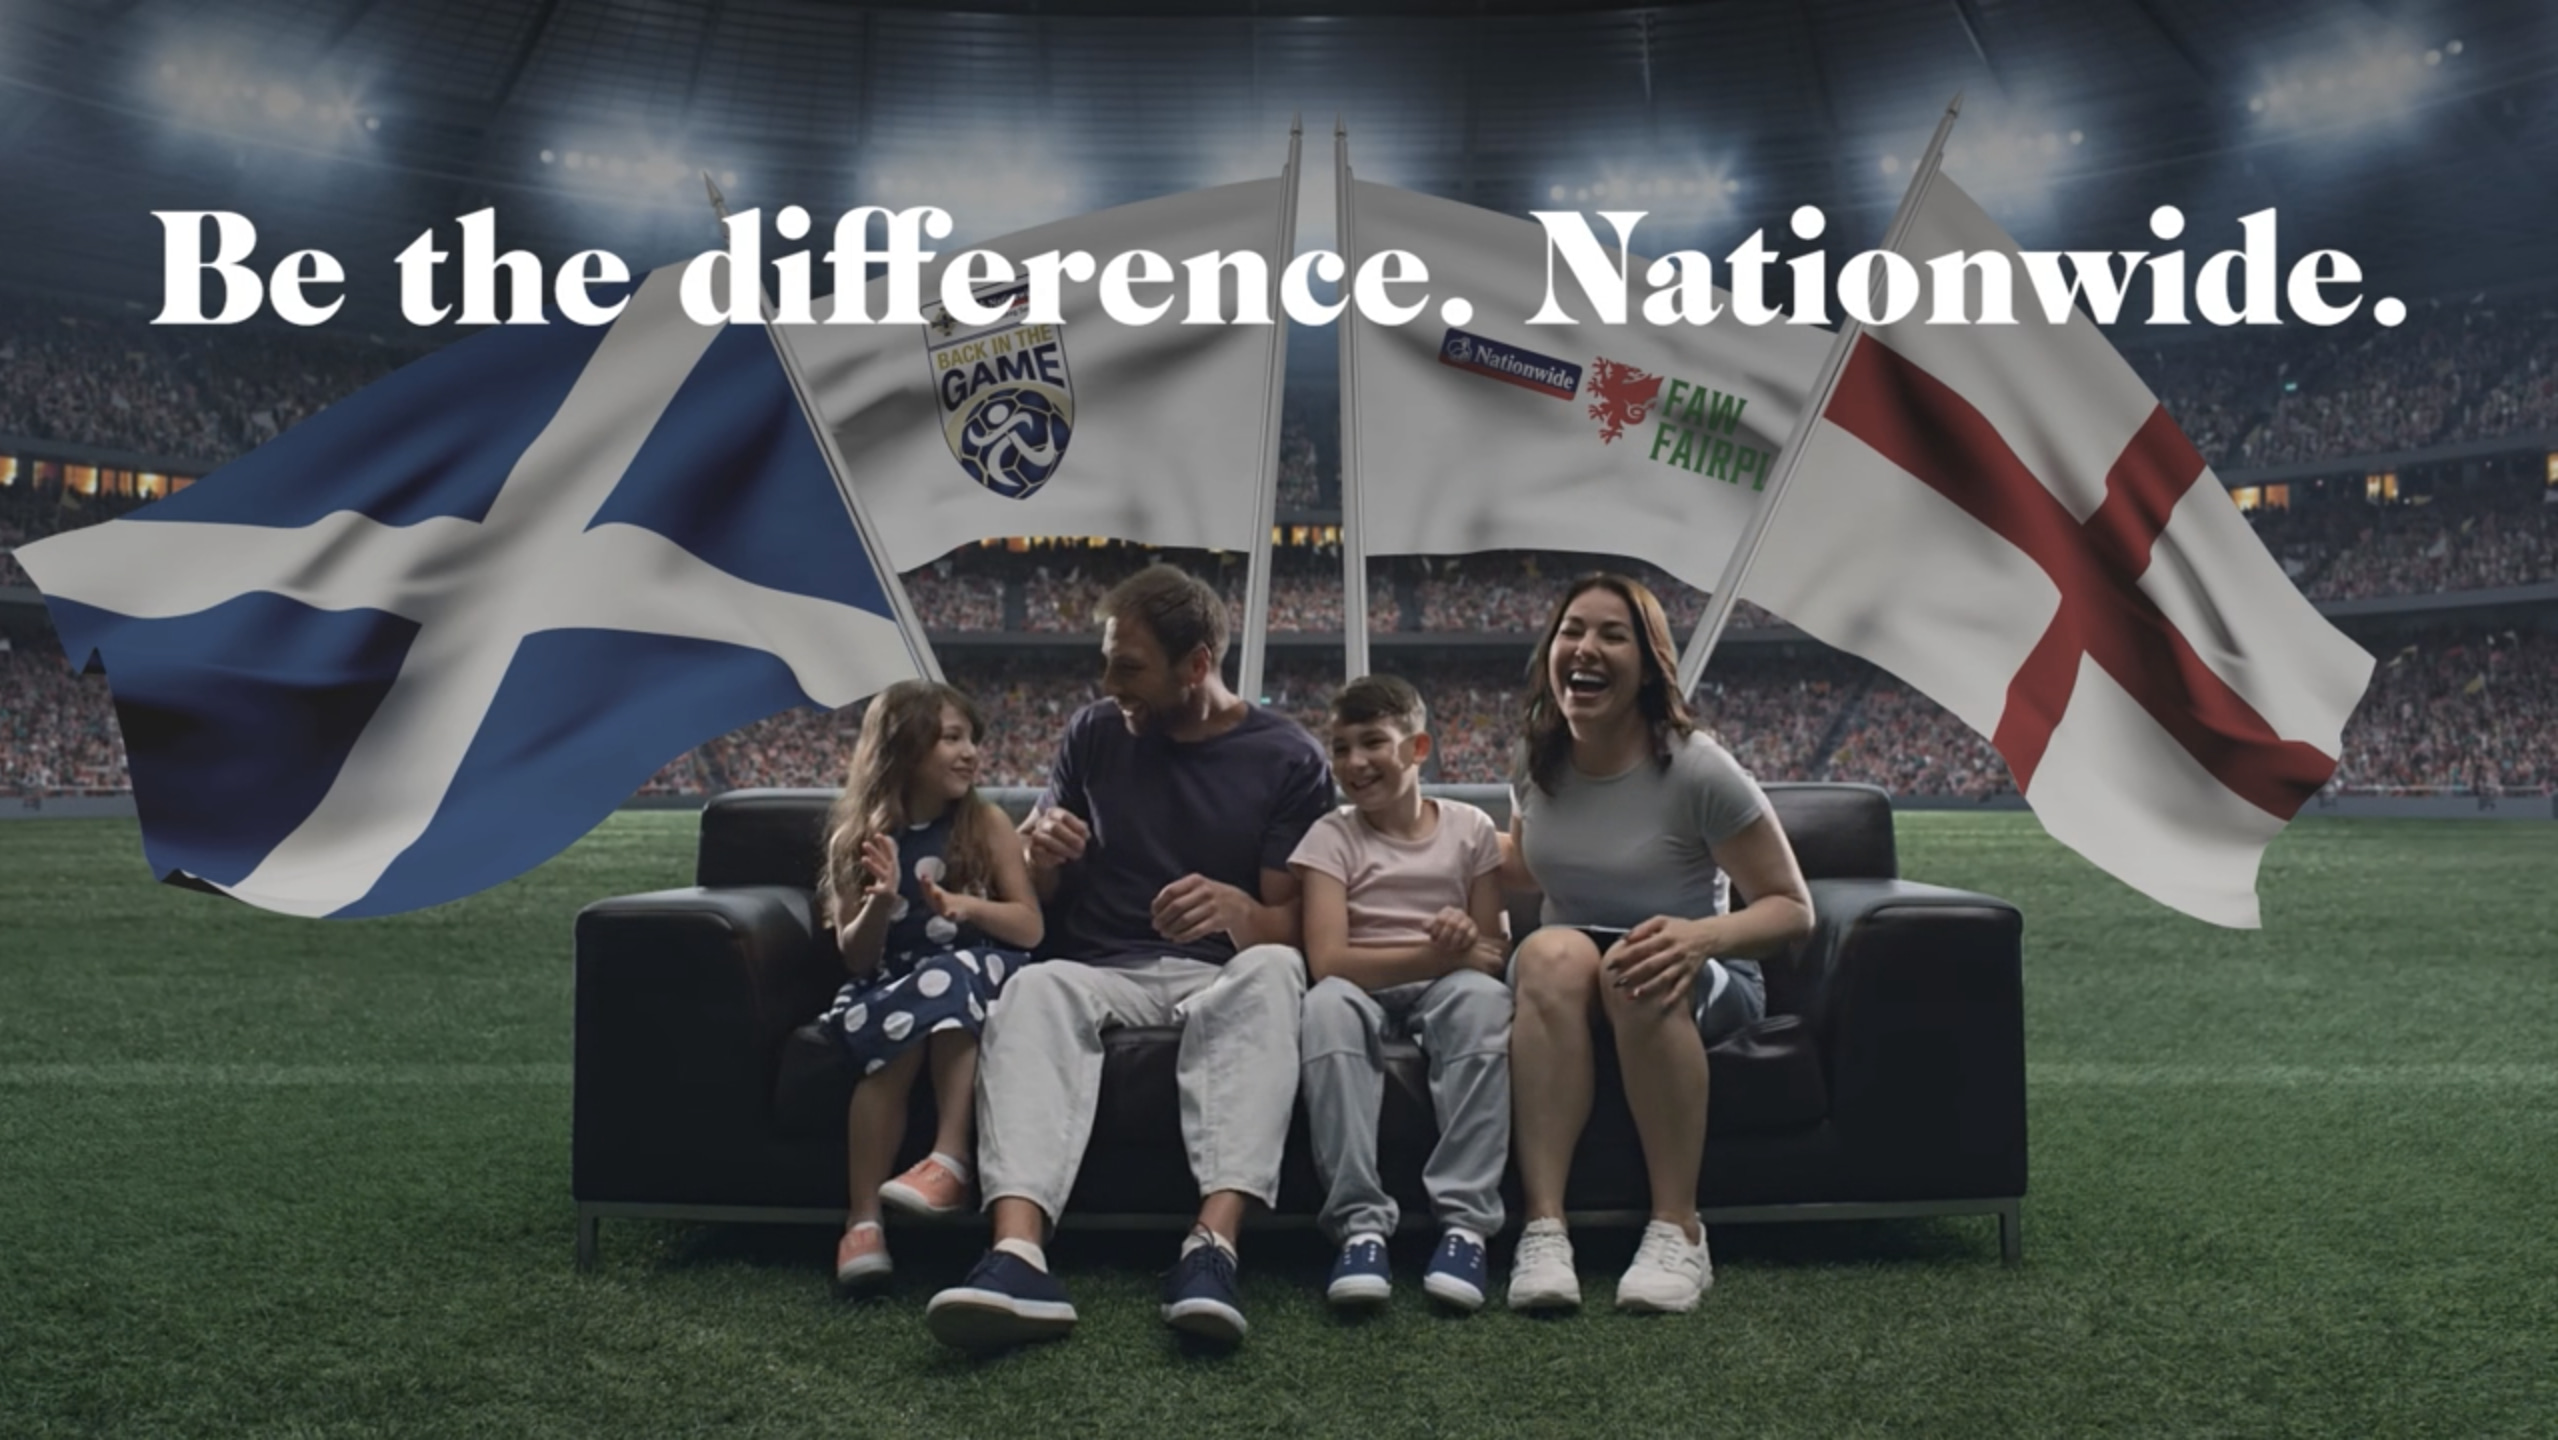 Be the difference. Nationwide